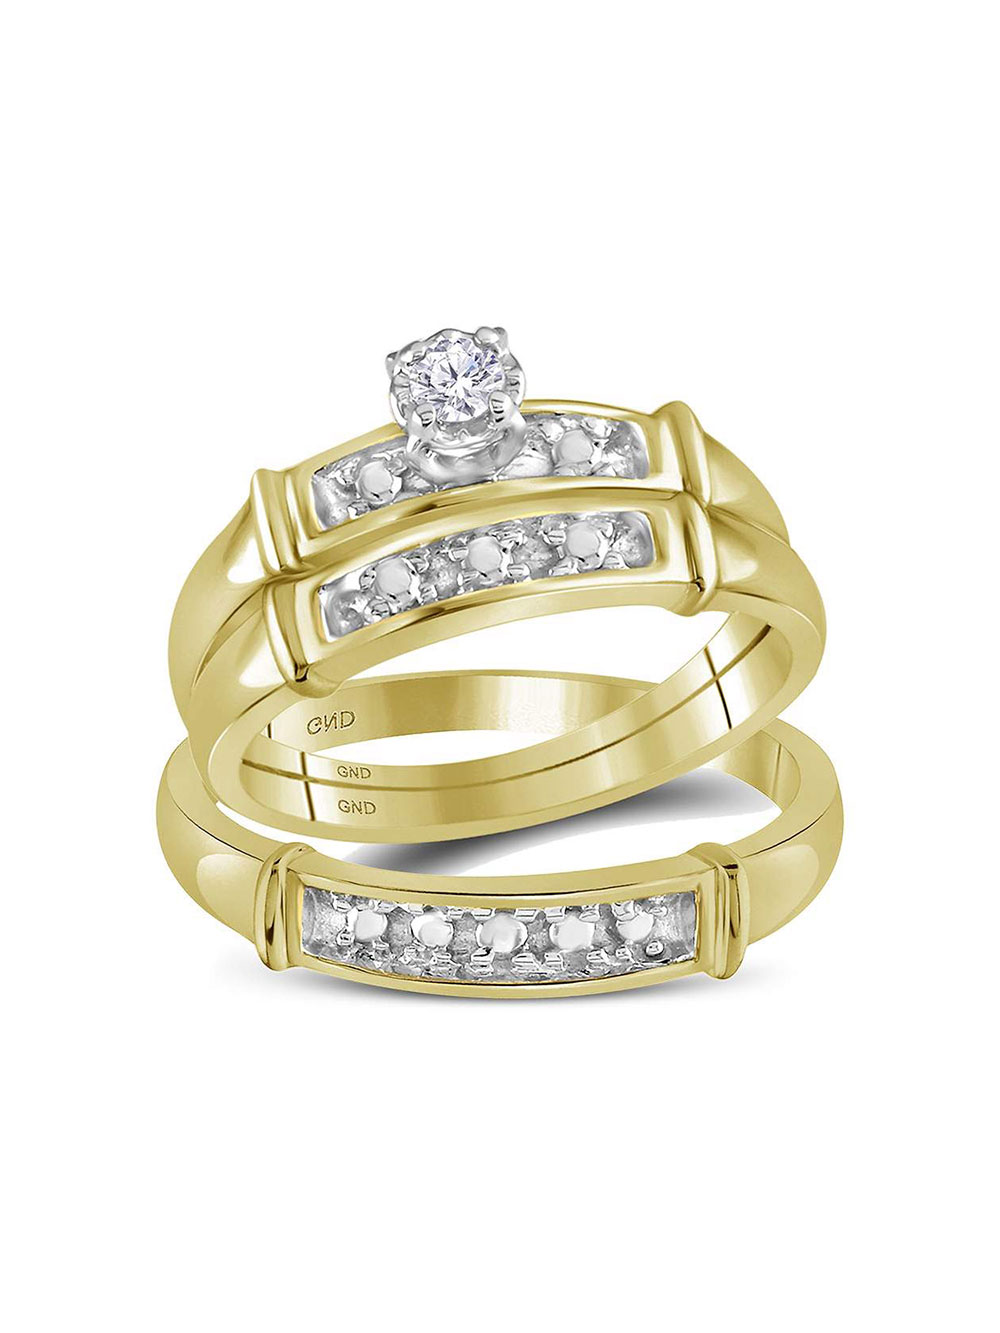 Diamond2deal 14kt Yellow Gold His Hers Round Diamond Solitaire